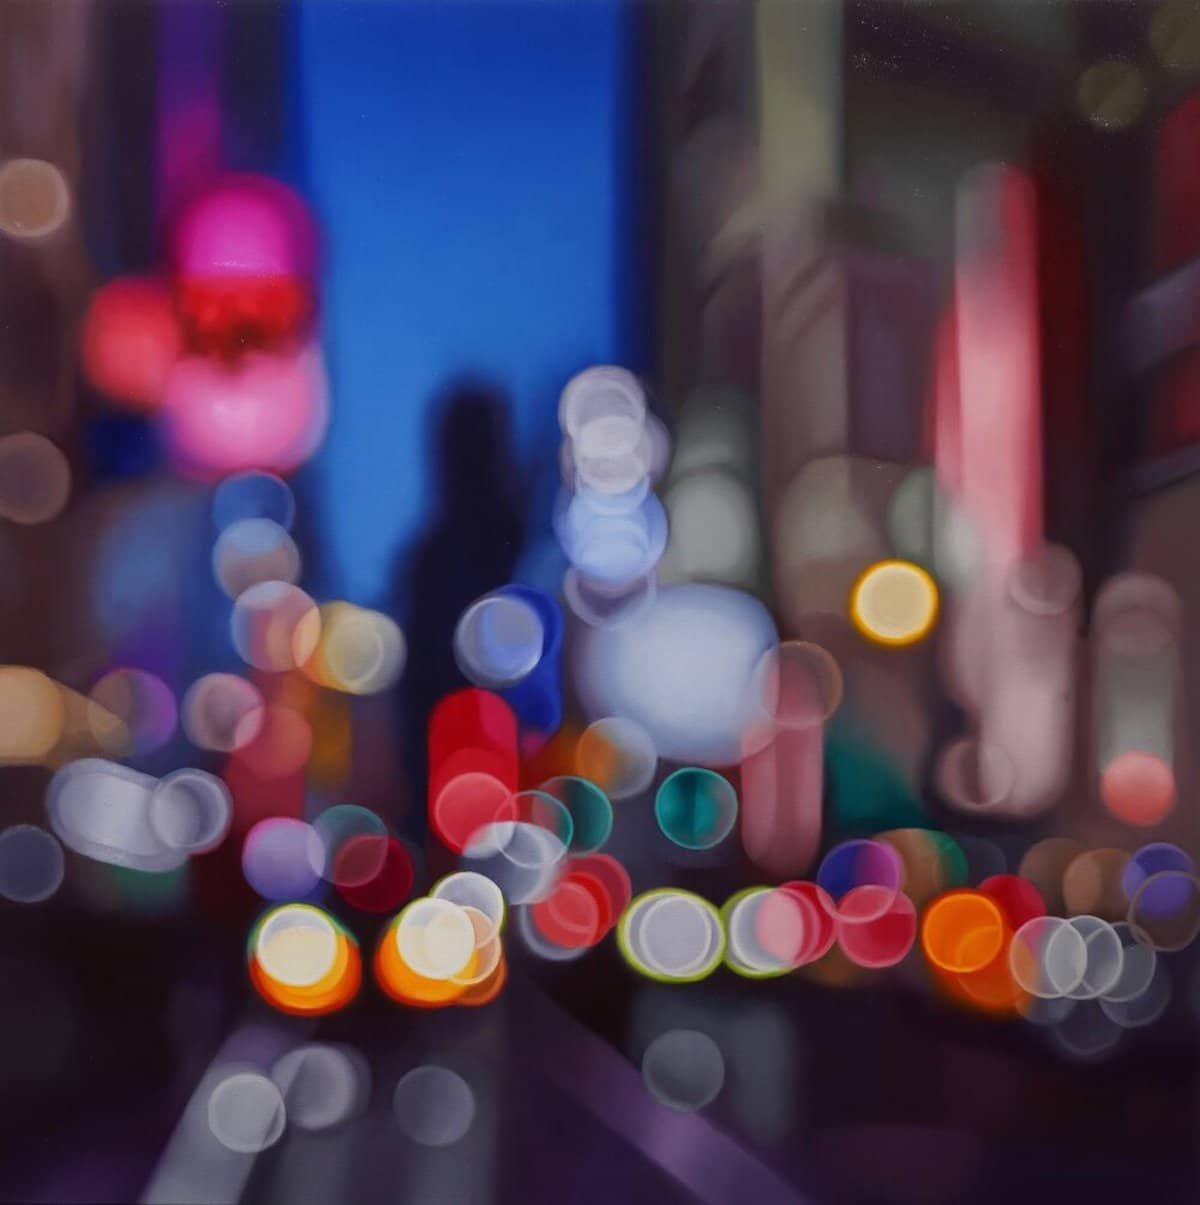 Abstract Paintings by Philip Barlow